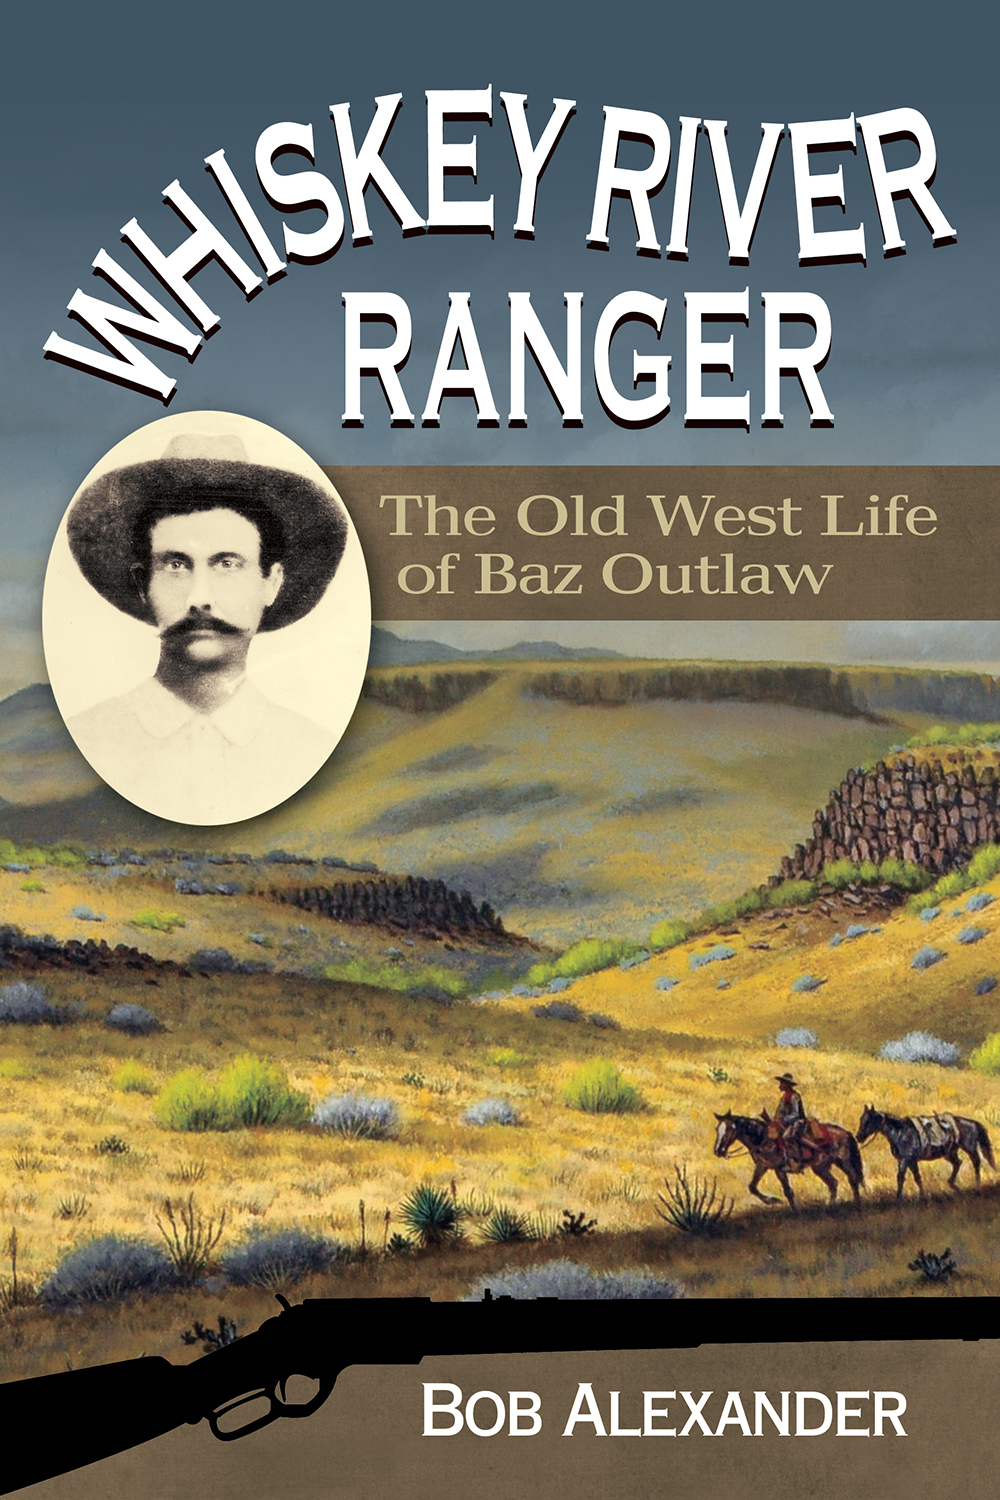 Whiskey River Ranger The Old West Life of Baz Outlaw